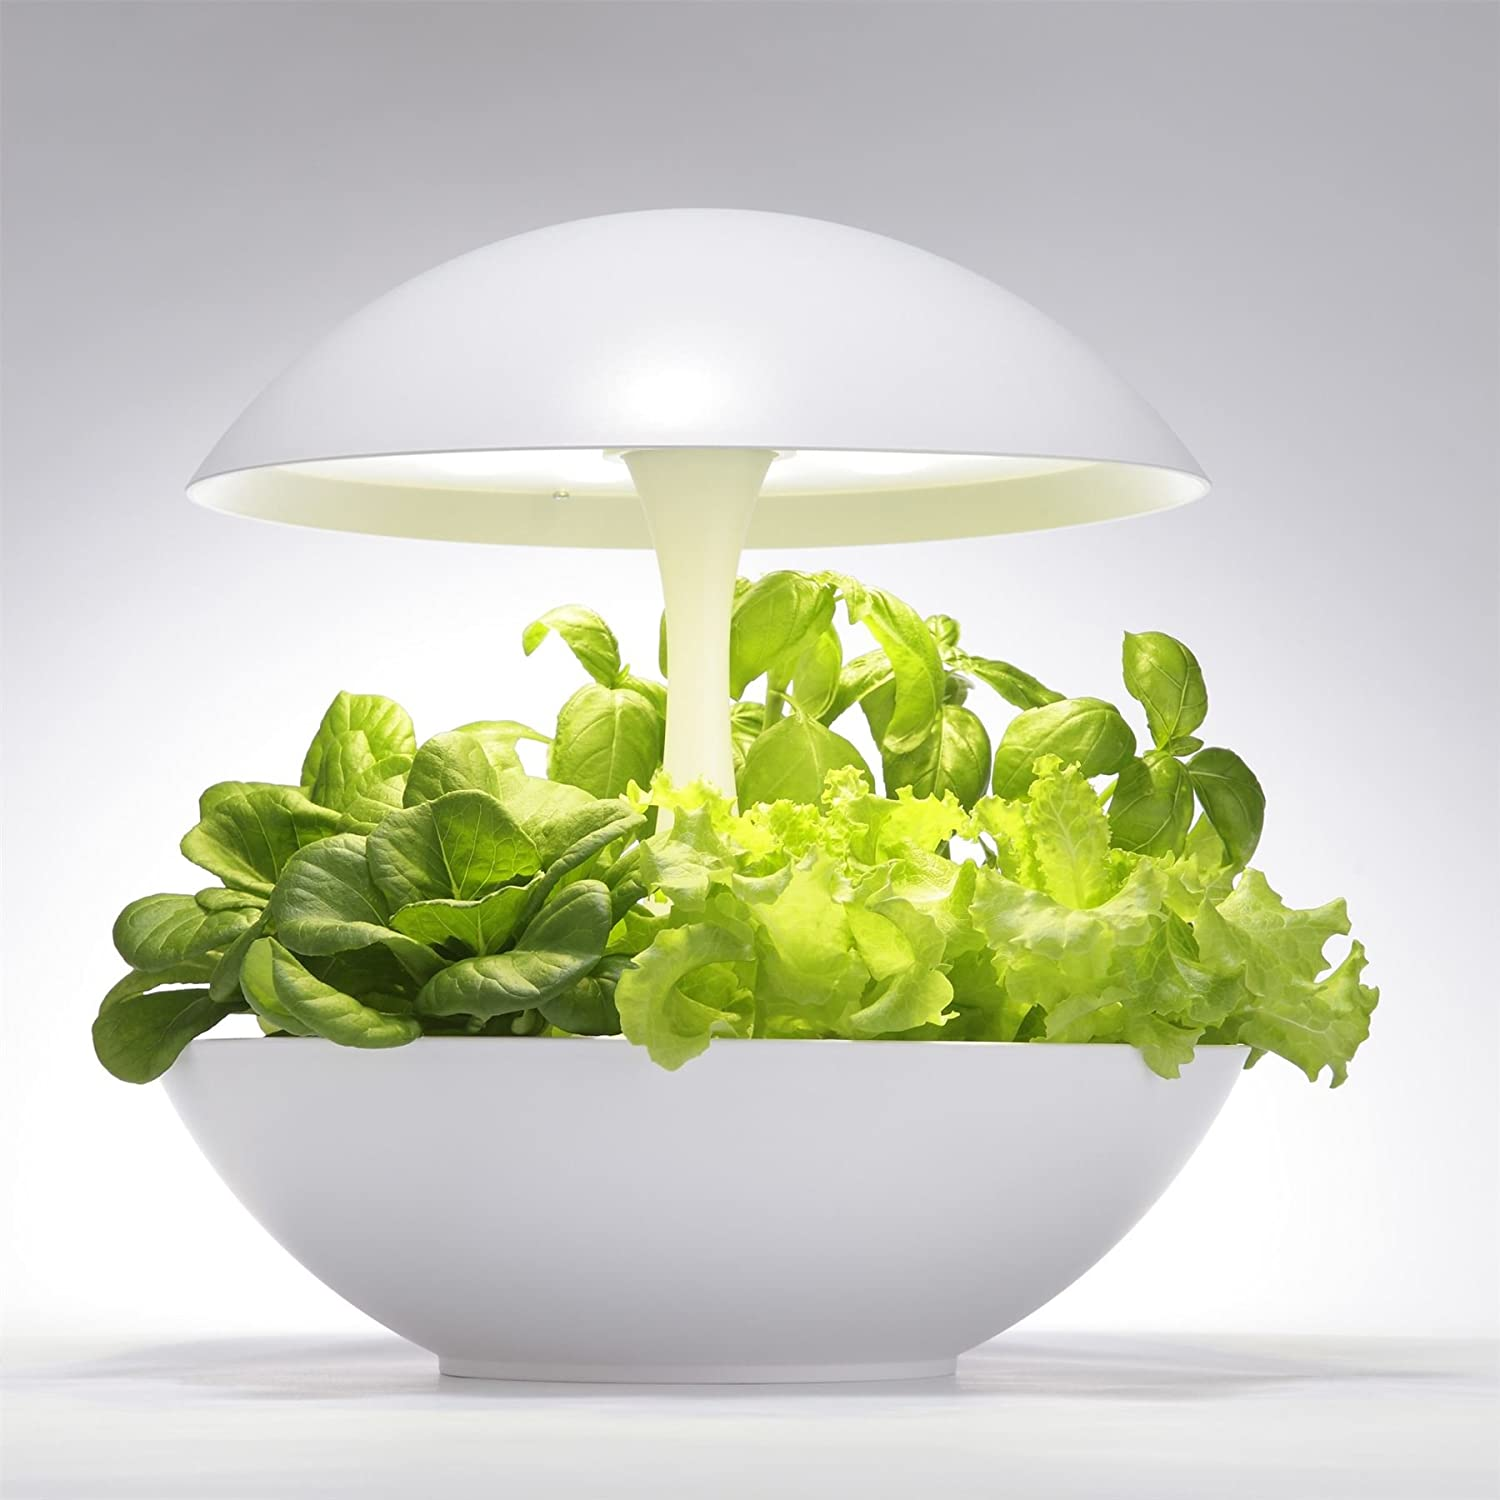 for know fluorescent are even with grow cheap work plants costly indoor through example bulbs traditionally compared led light lighting lights incandescent that we